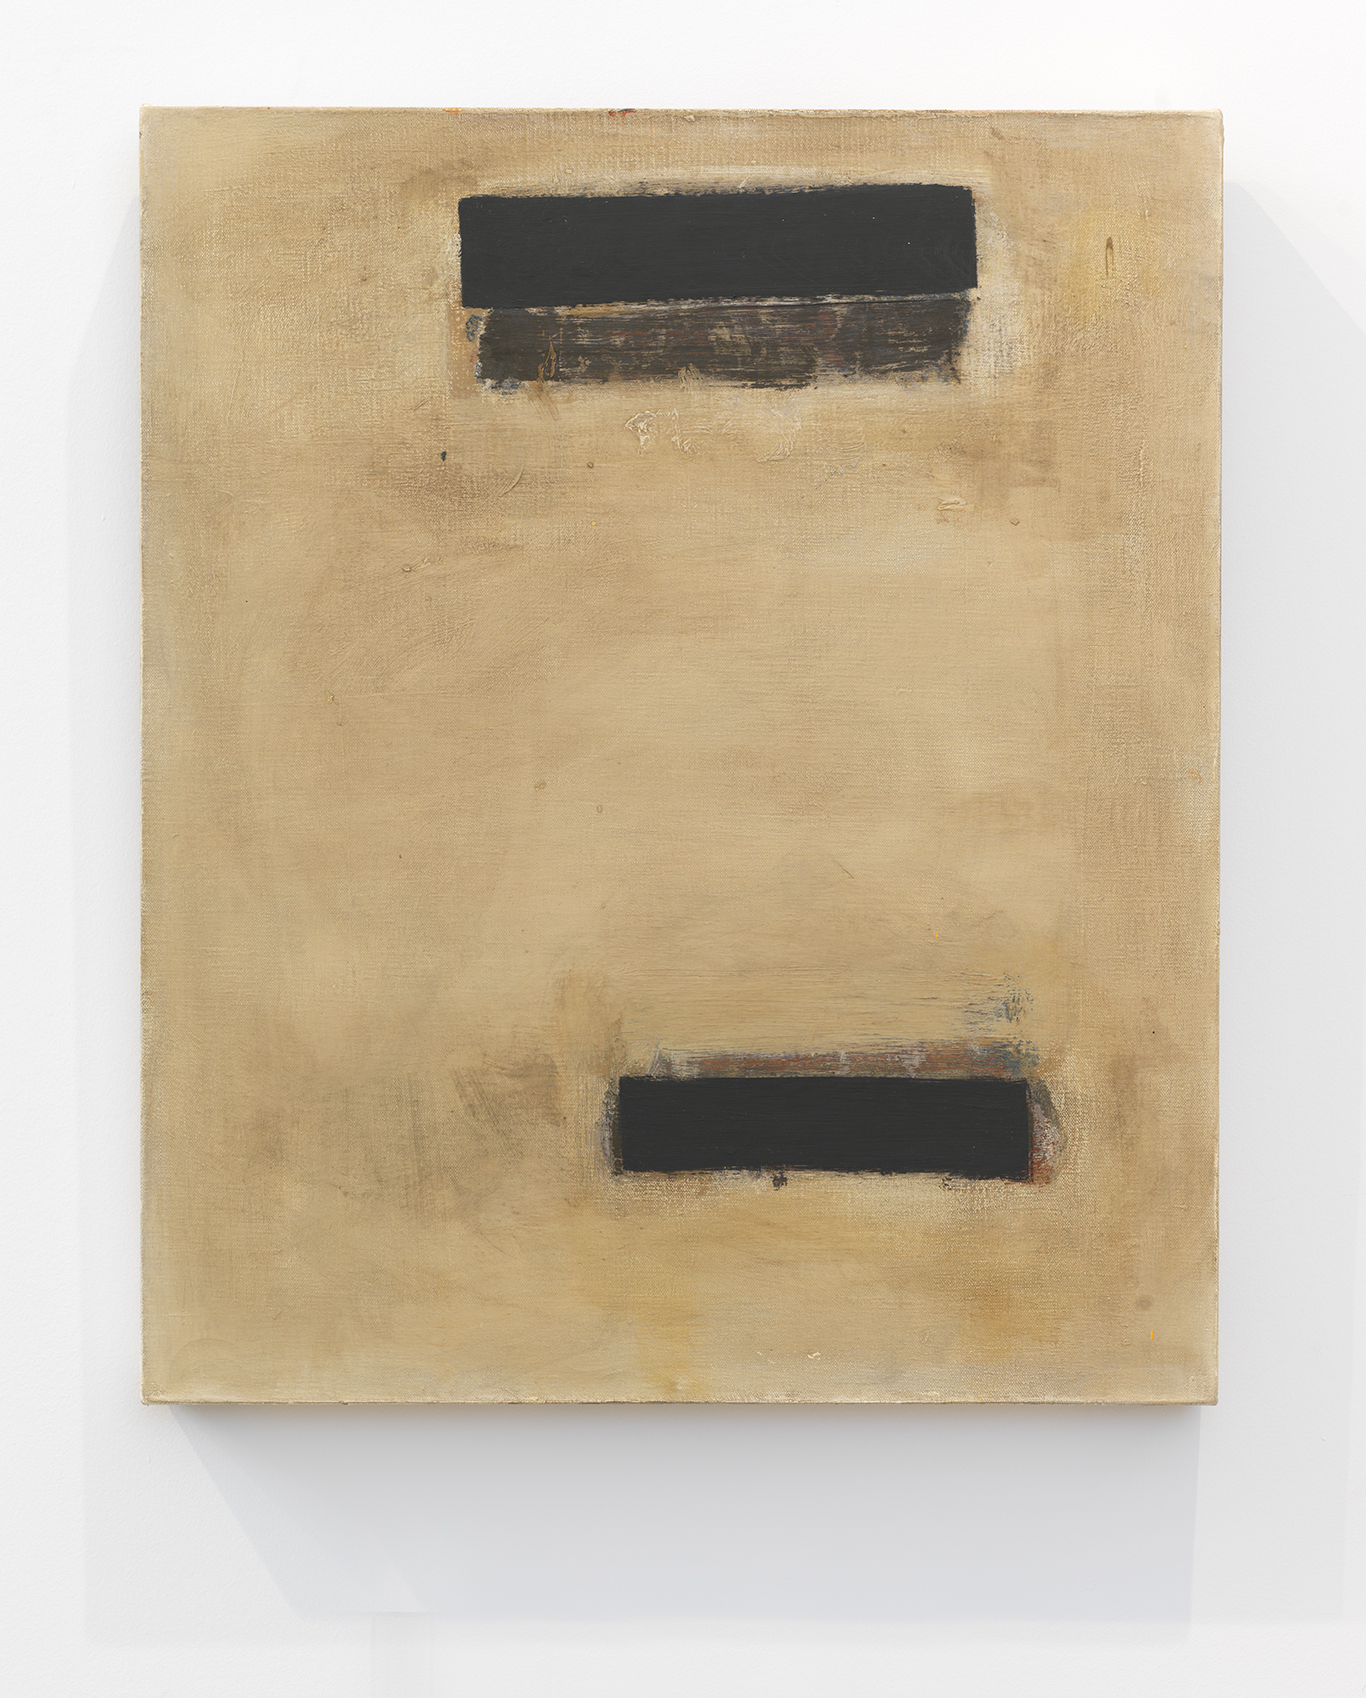 Denzil Hurley  Redact-2 , 2003-2005 Oil on canvas 24 x 20 inches